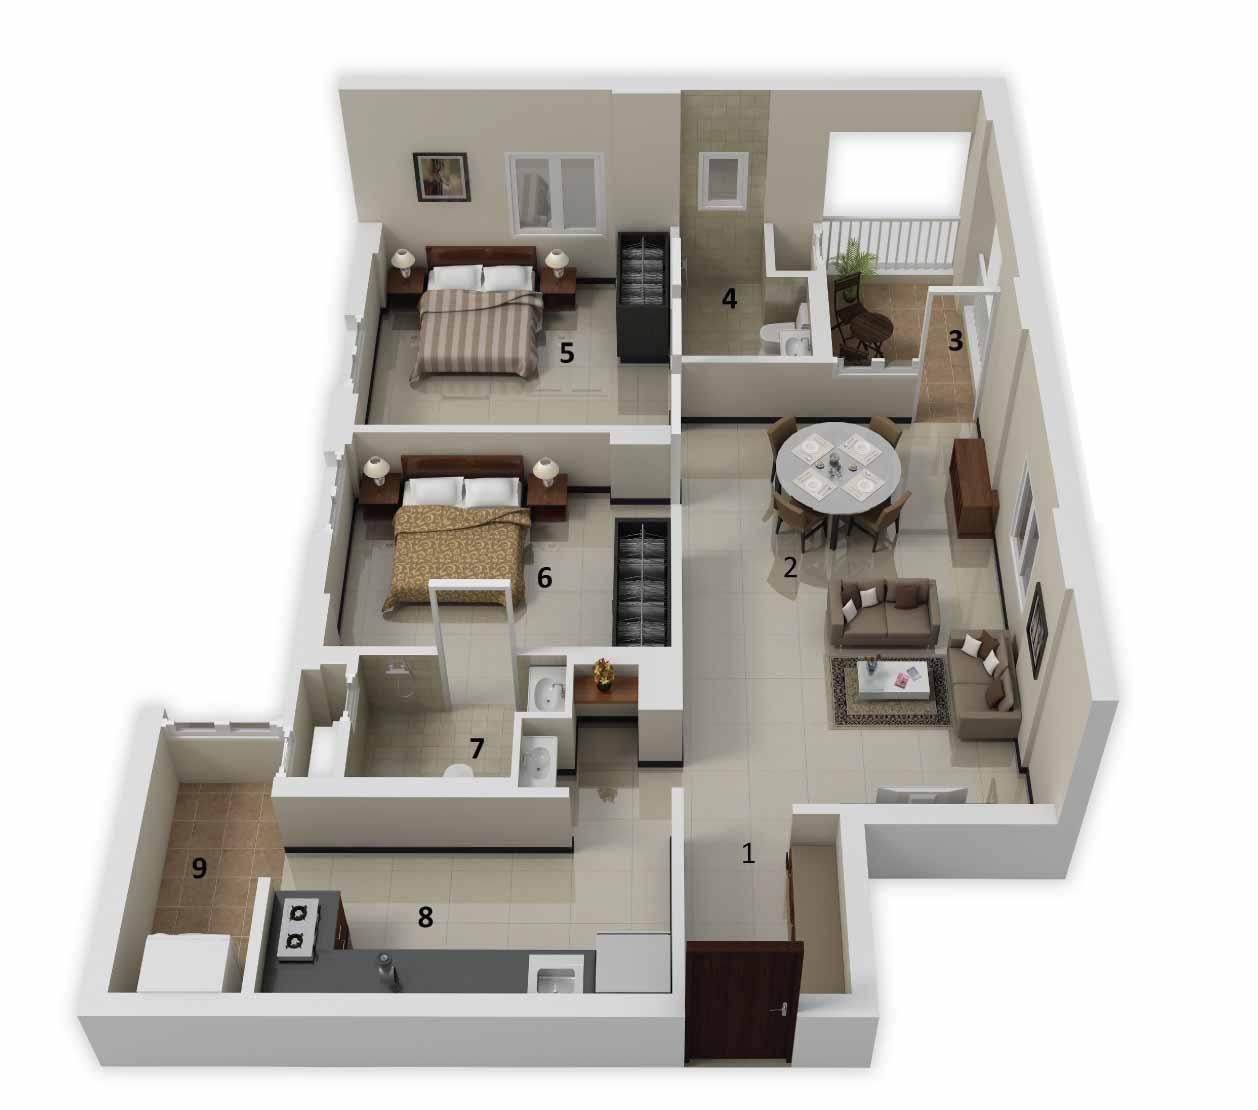 25 more 2 bedroom floor plans